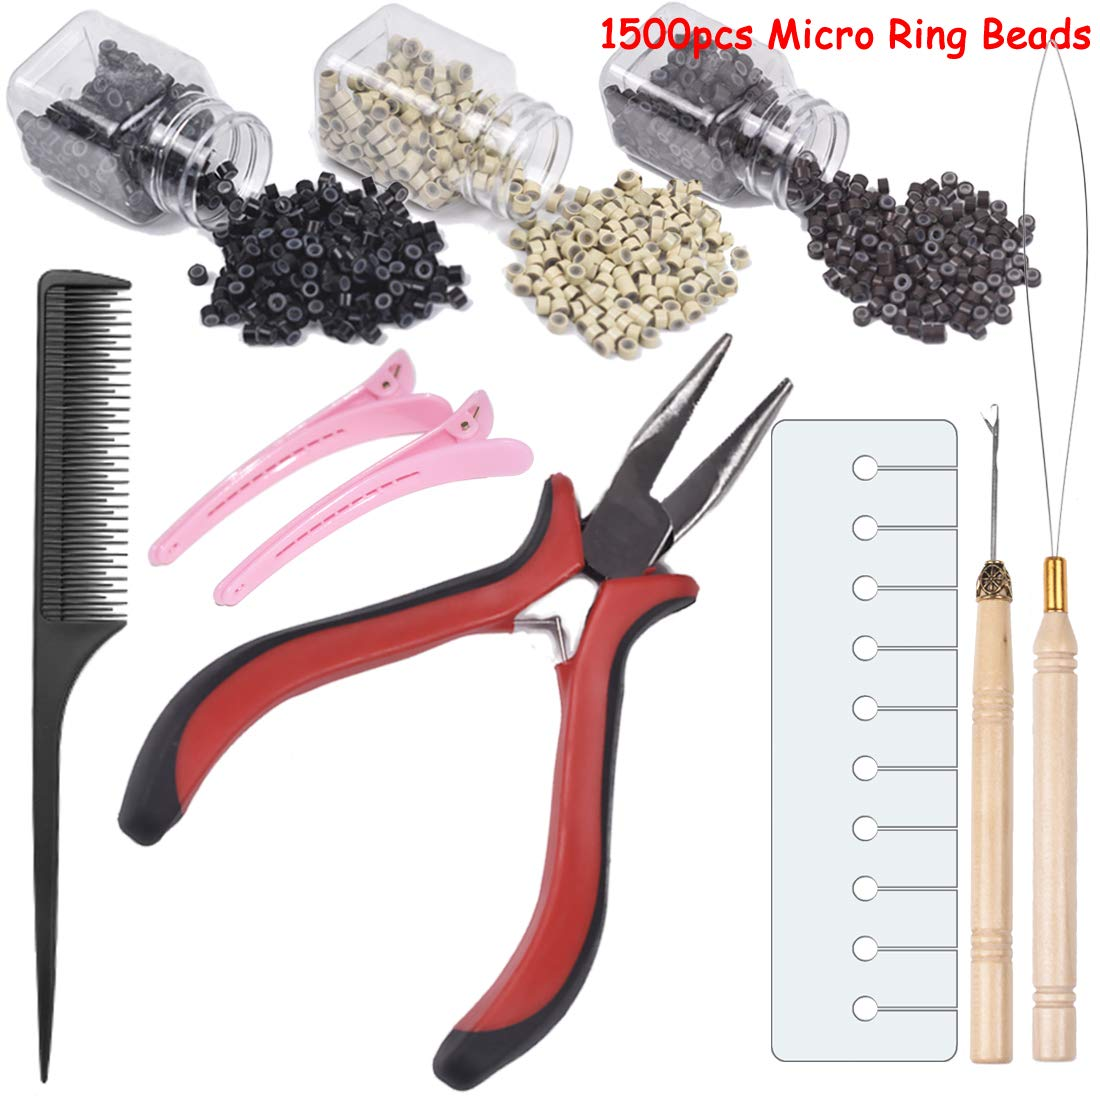 Hair Extensions Kits for Micro Ring Link Hair and Feather Extensions 1500Pcs 0.2 Inches Micro Ring Beads (black brown blonde) 1 Pliers 2 Hook Needle Pulling Loop 1 Comb 2 Hair Clip 1 Hair Helpful Card by SUNiYA